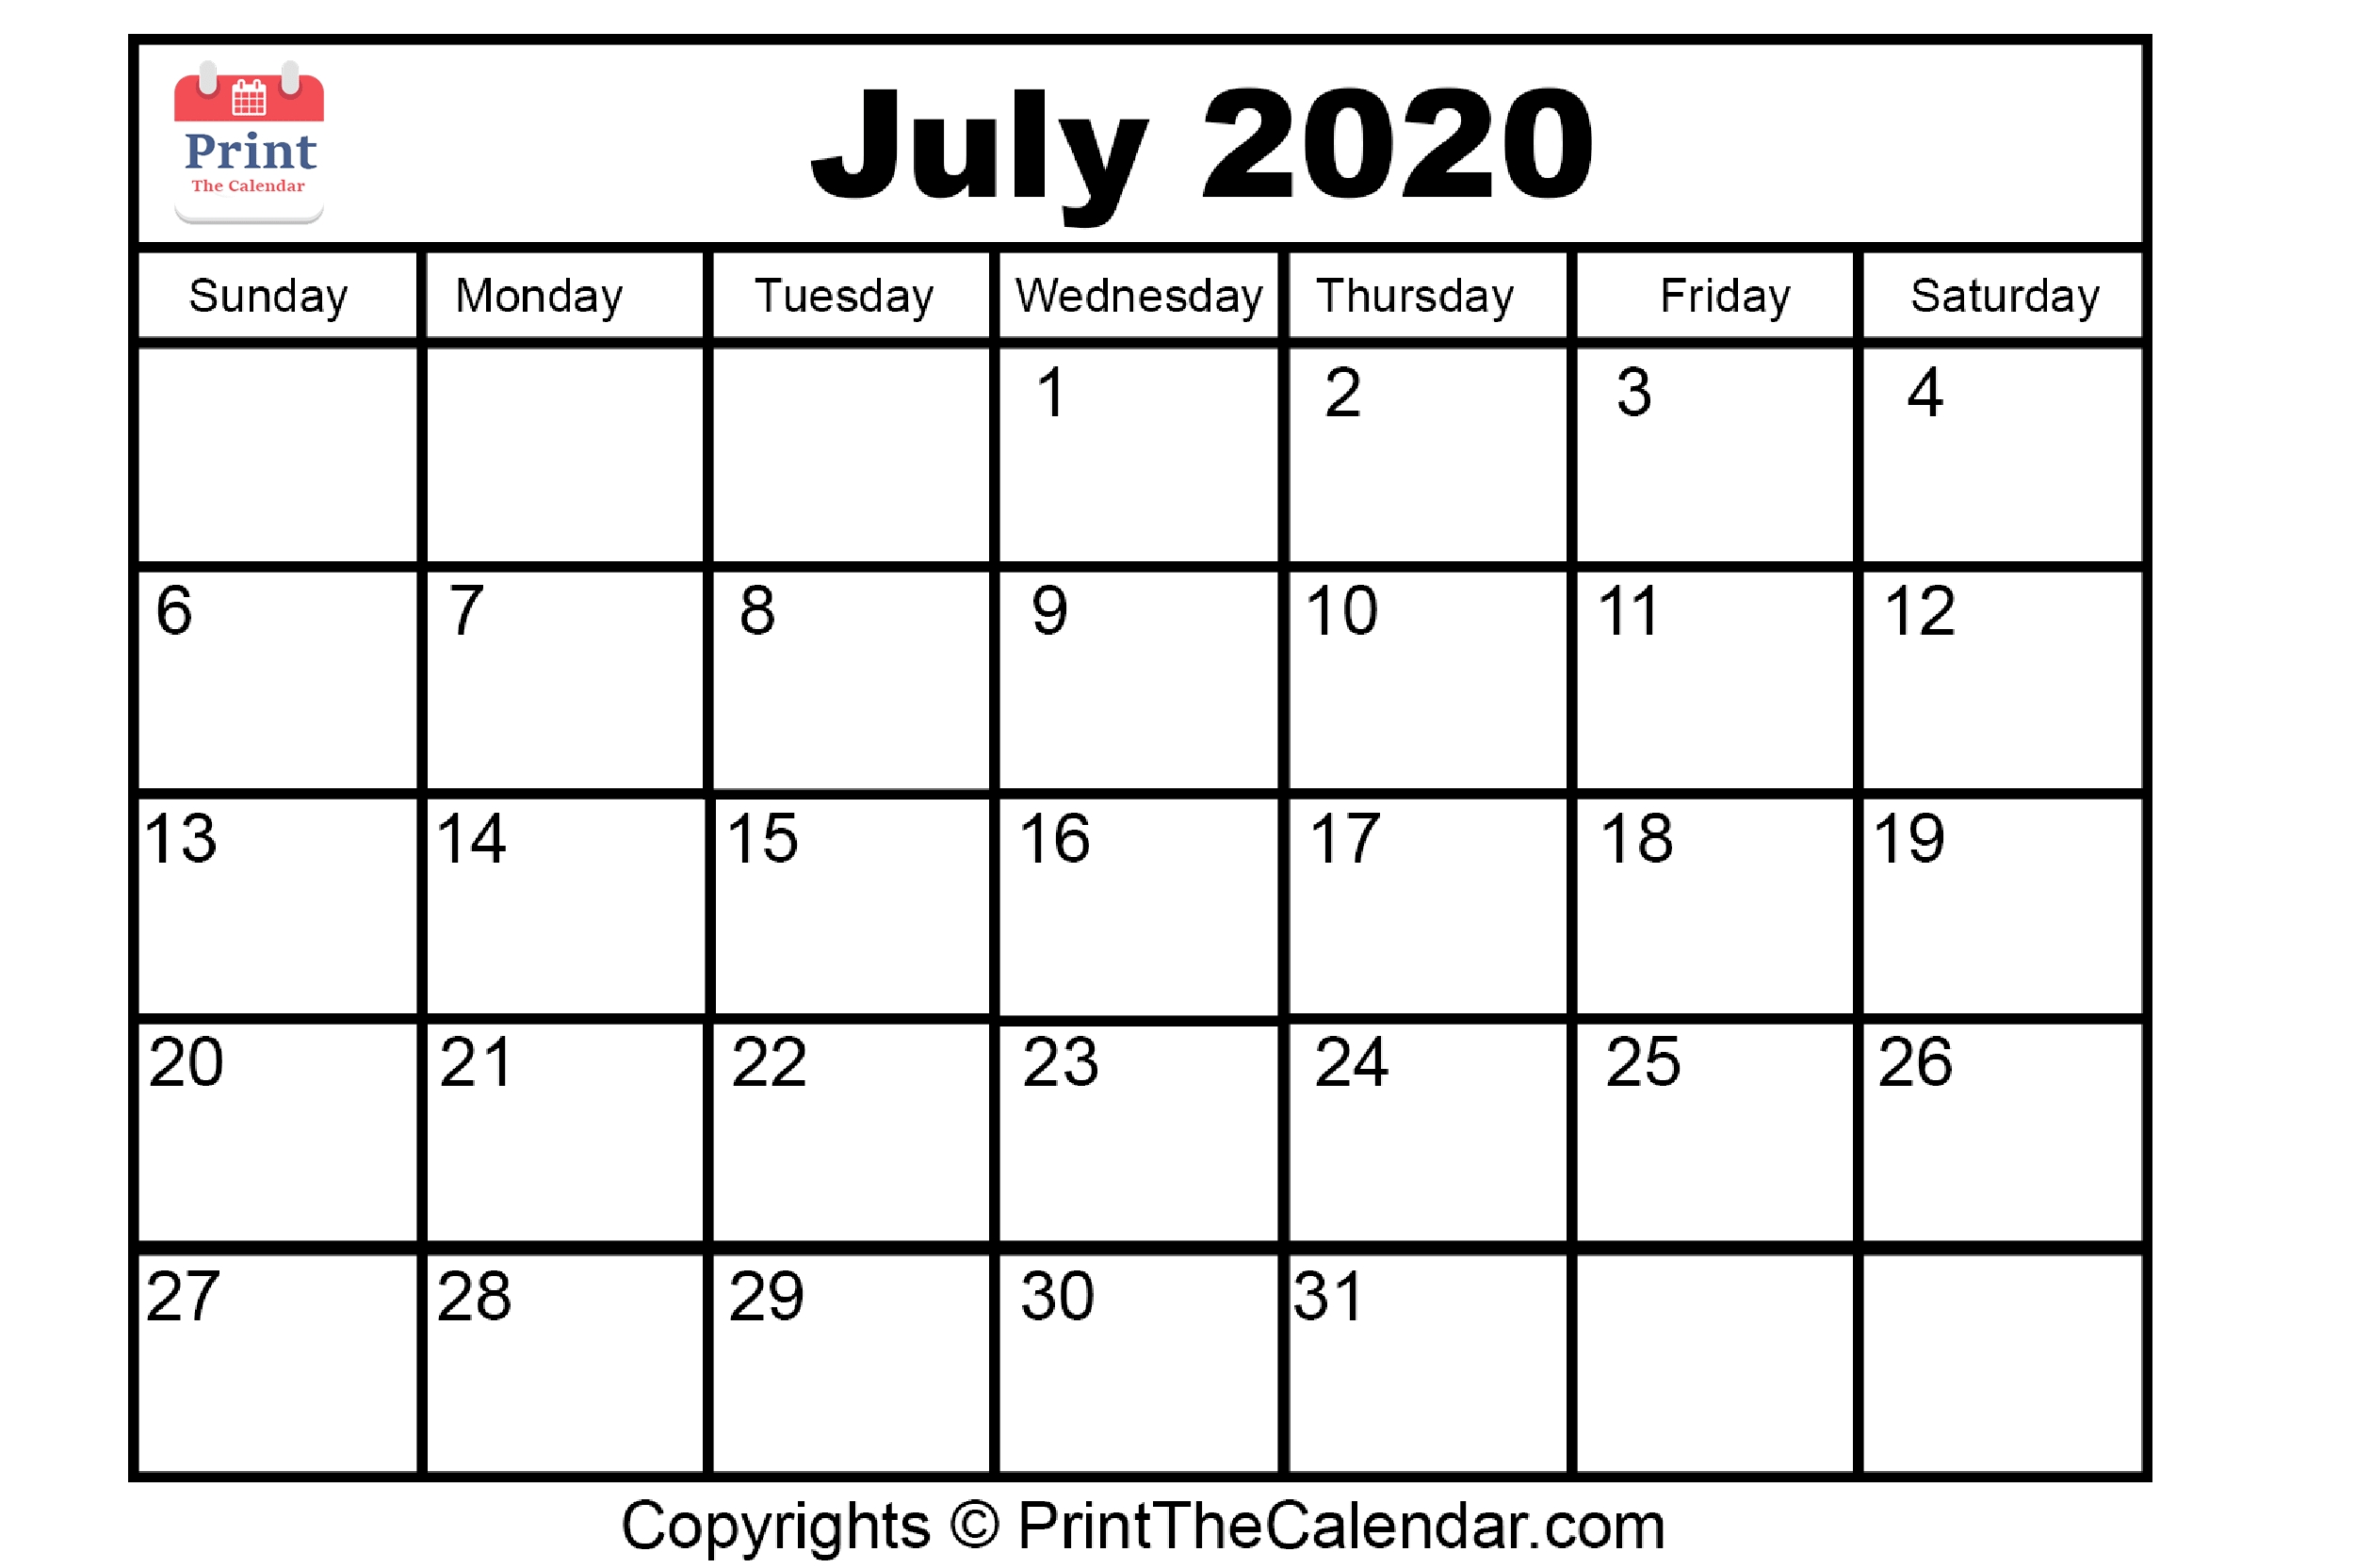 Free}*^ July 2020 Printable Calendar For Word, Excel & Pdf